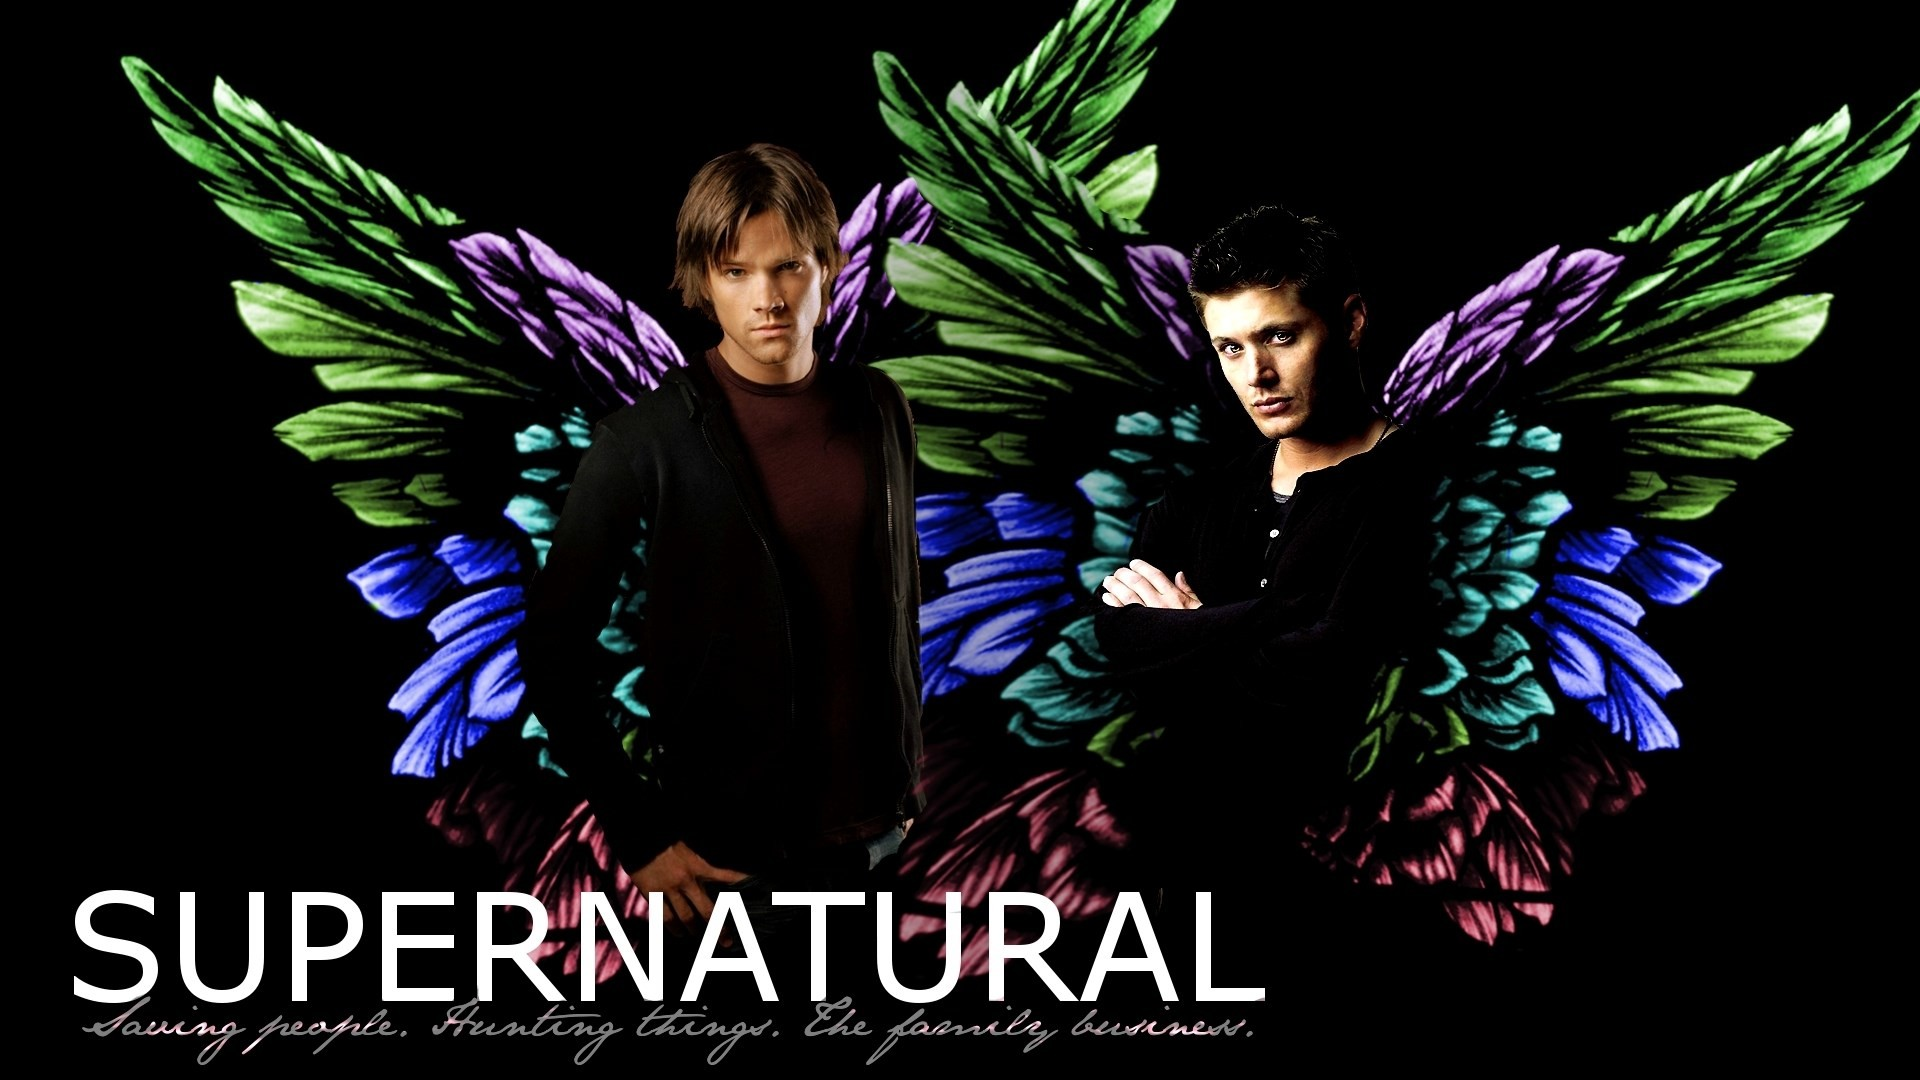 1920x1080 supernatural photo backgrounds